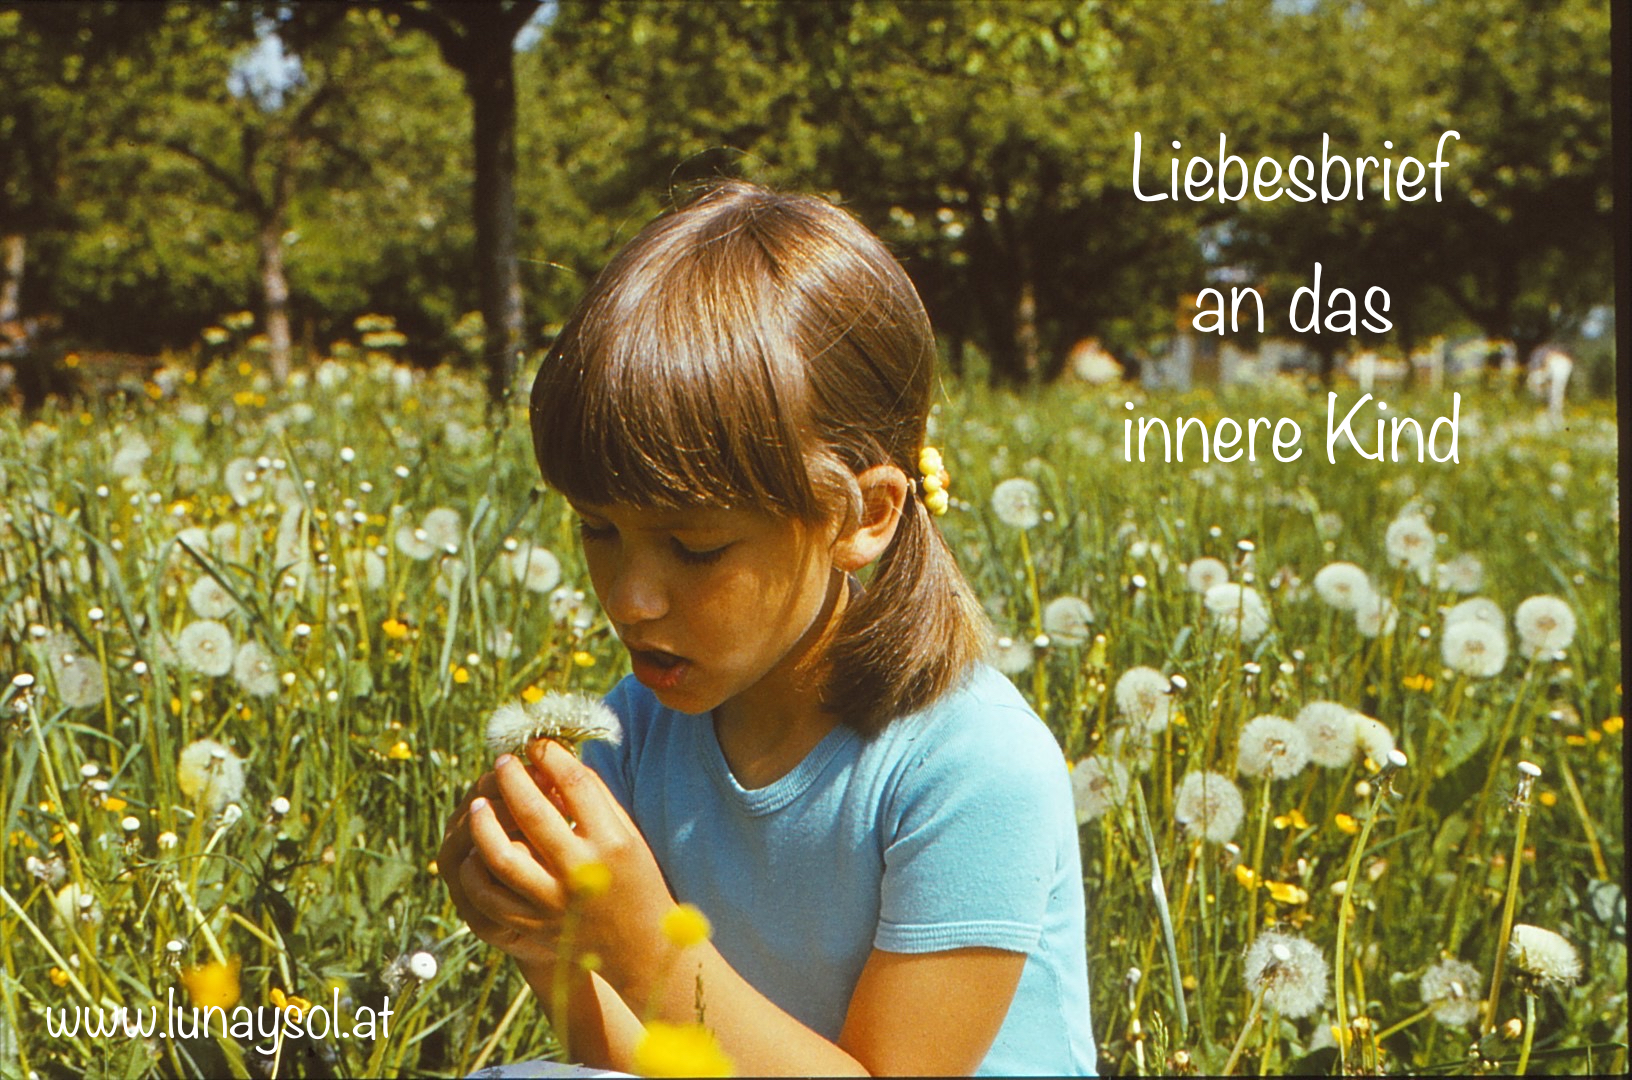 Healing songs for the inner child- Liebesbrief an das innere Kind